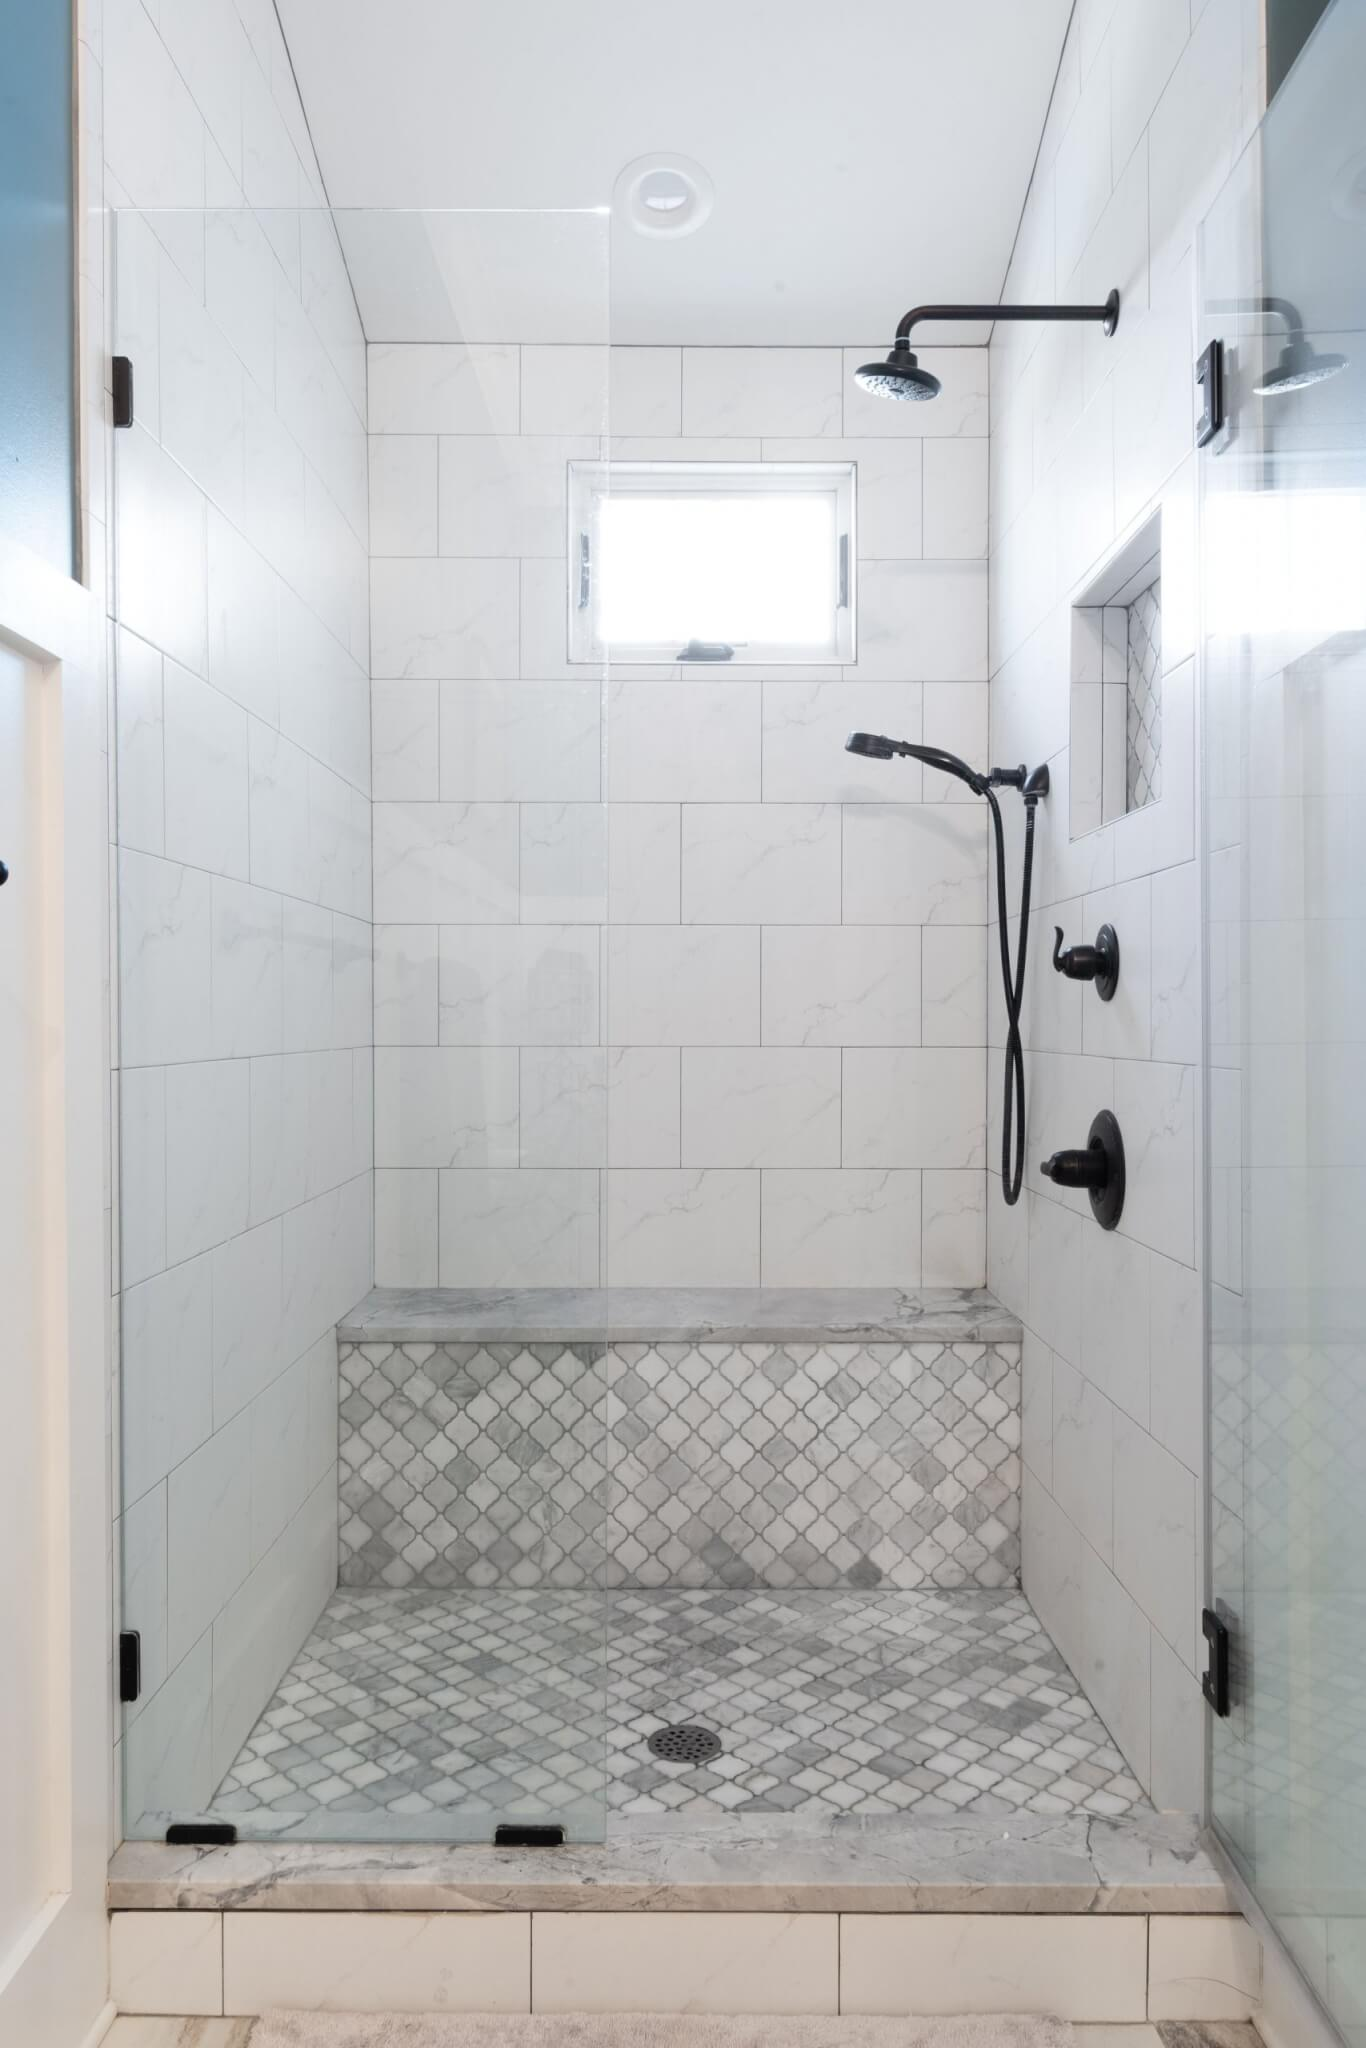 Facts About Waterproofing Your Shower Walls Sanctuary Homes